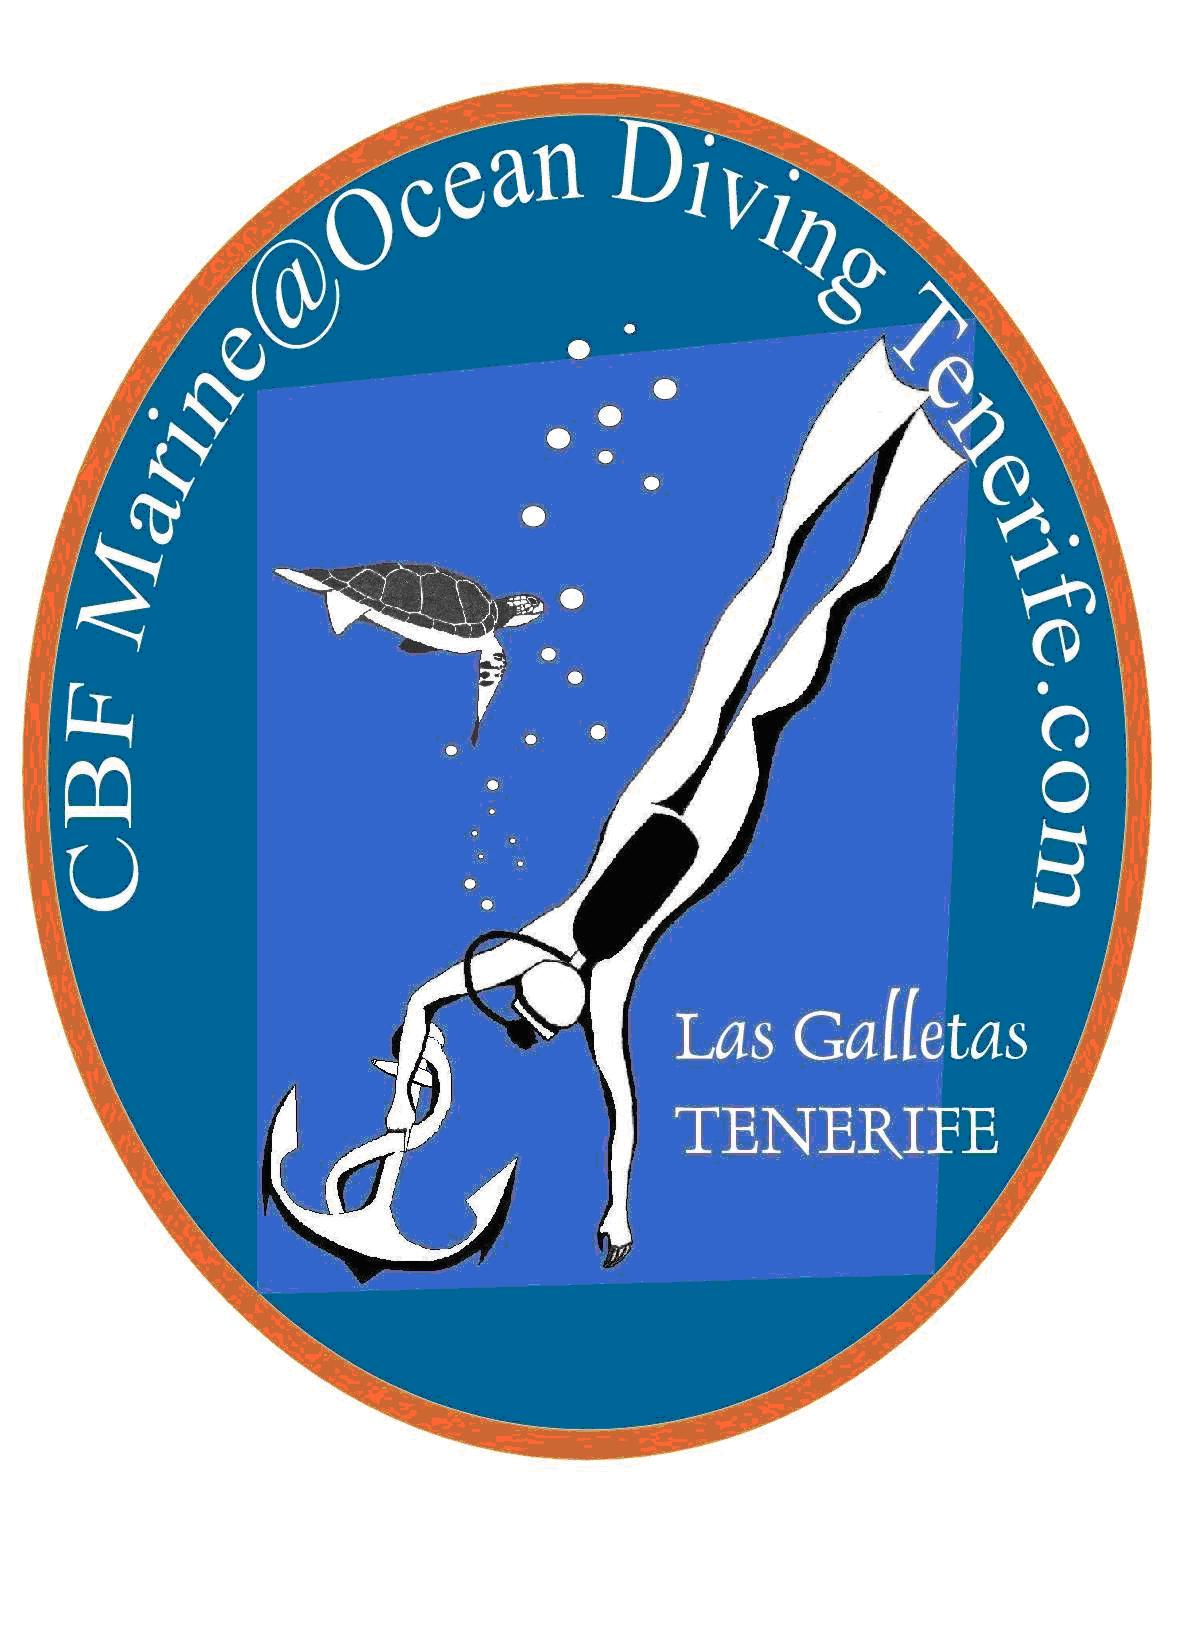 ocean diving tenerife logotipo